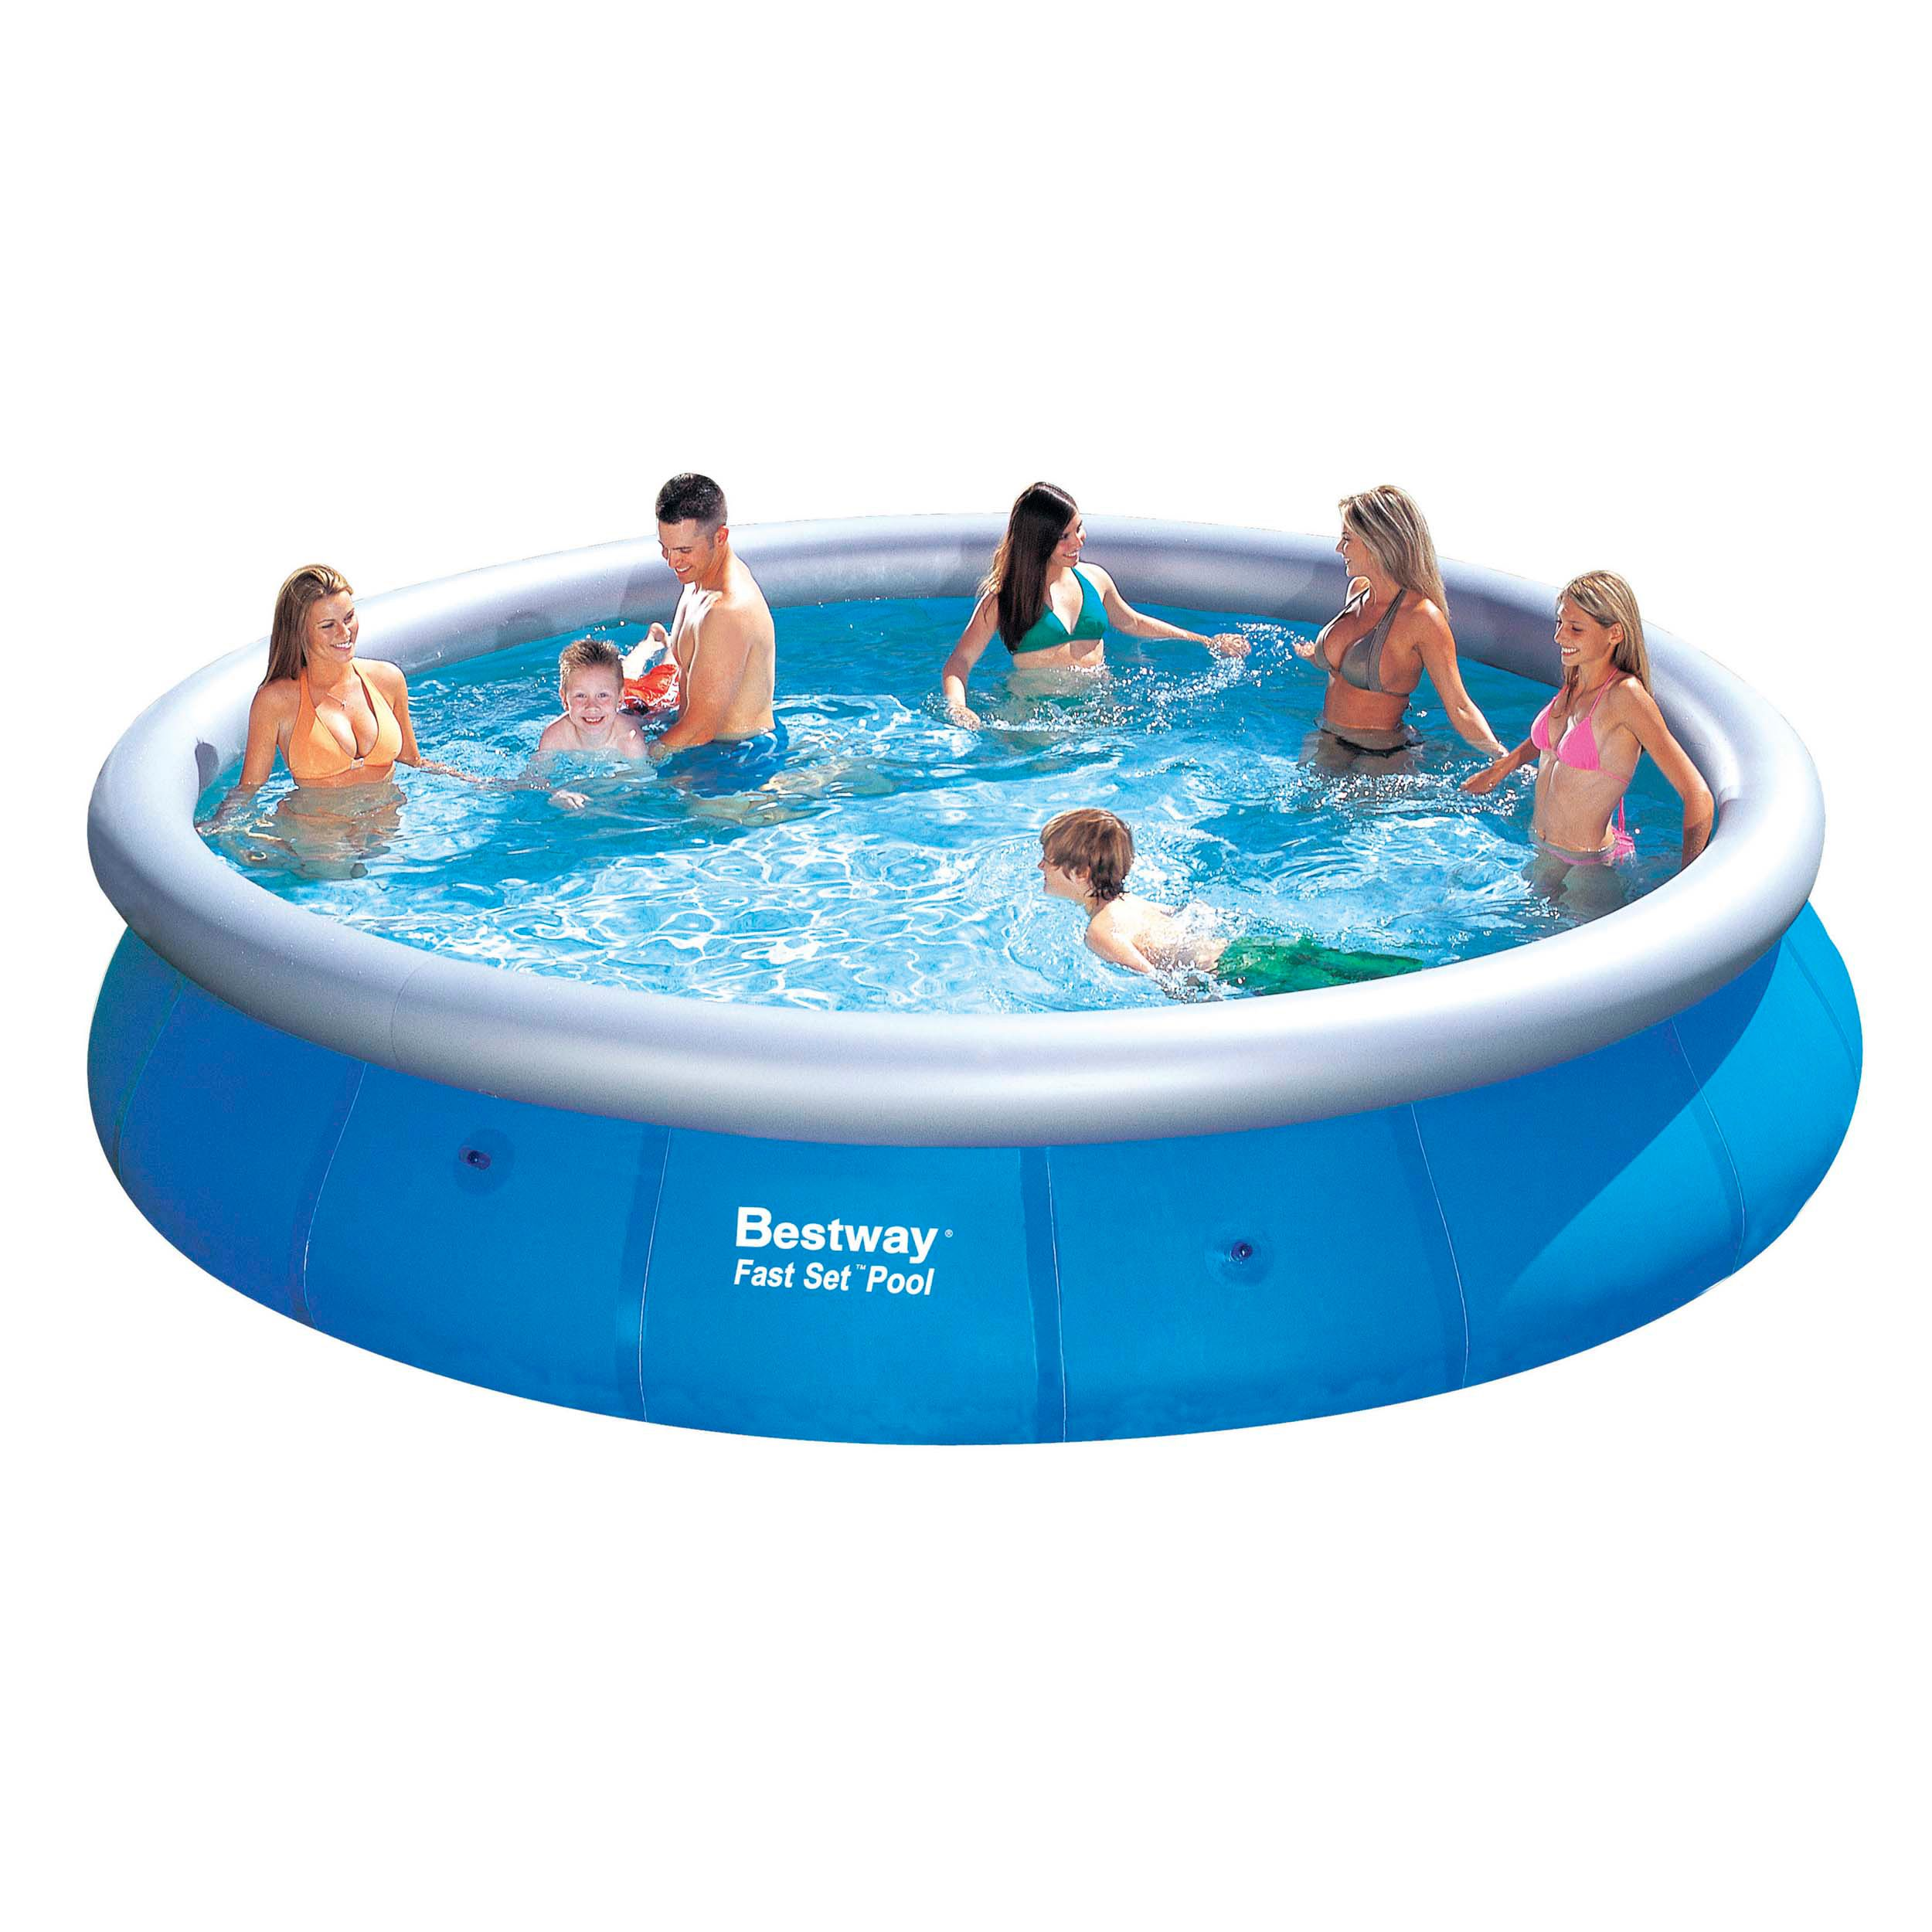 Quick Pool Abdeckplane This Bestway Fast Set Pool Is A Great Family Swimming Pool Because